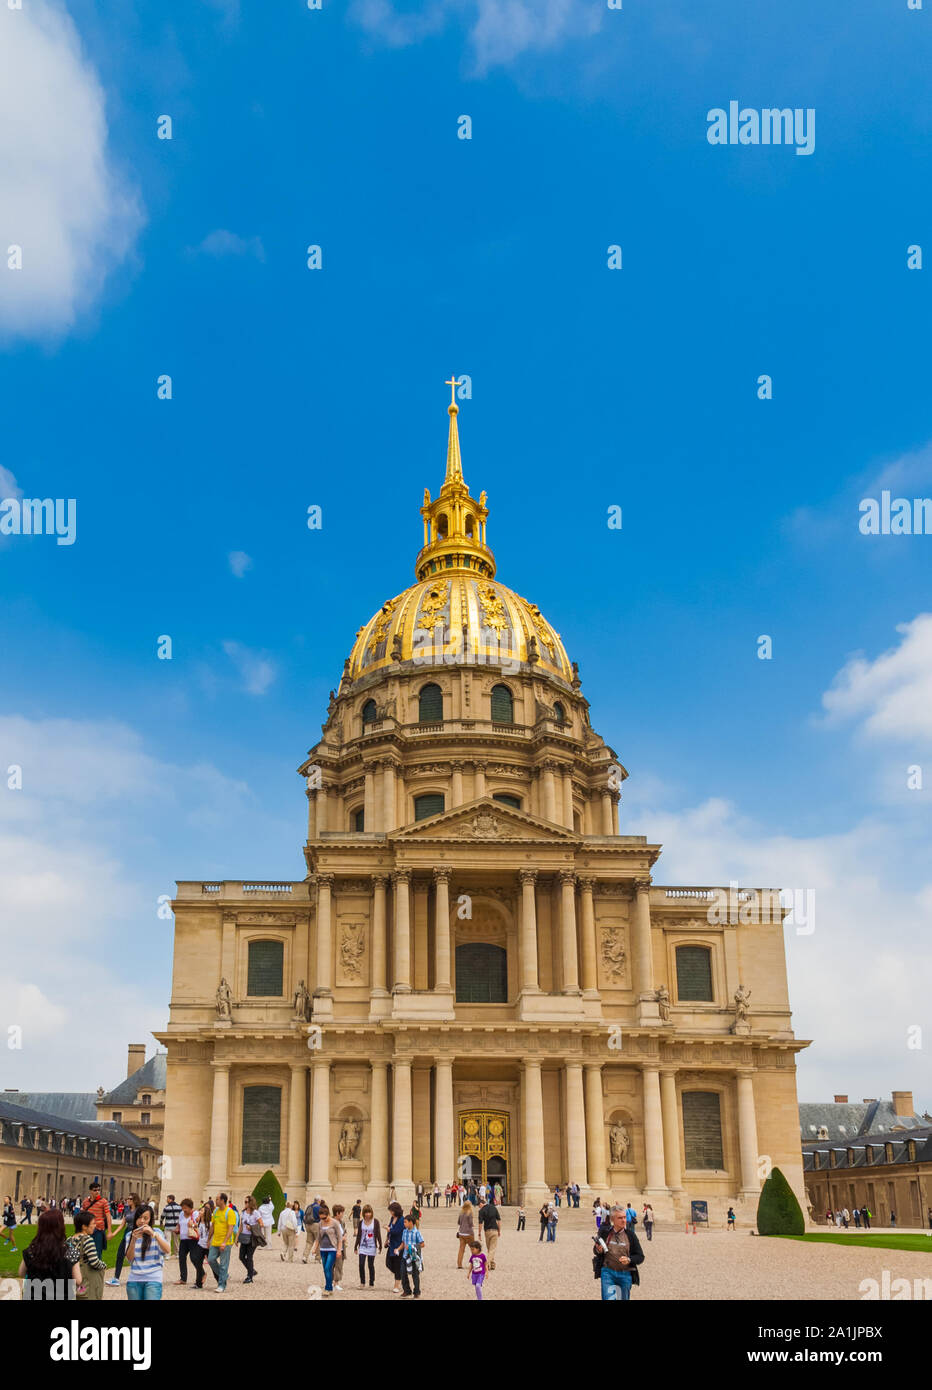 Lovely front view of the Dôme des Invalides, a large former church in the centre of the Les Invalides complex in Paris, France. The Dôme is one of the... Stock Photo